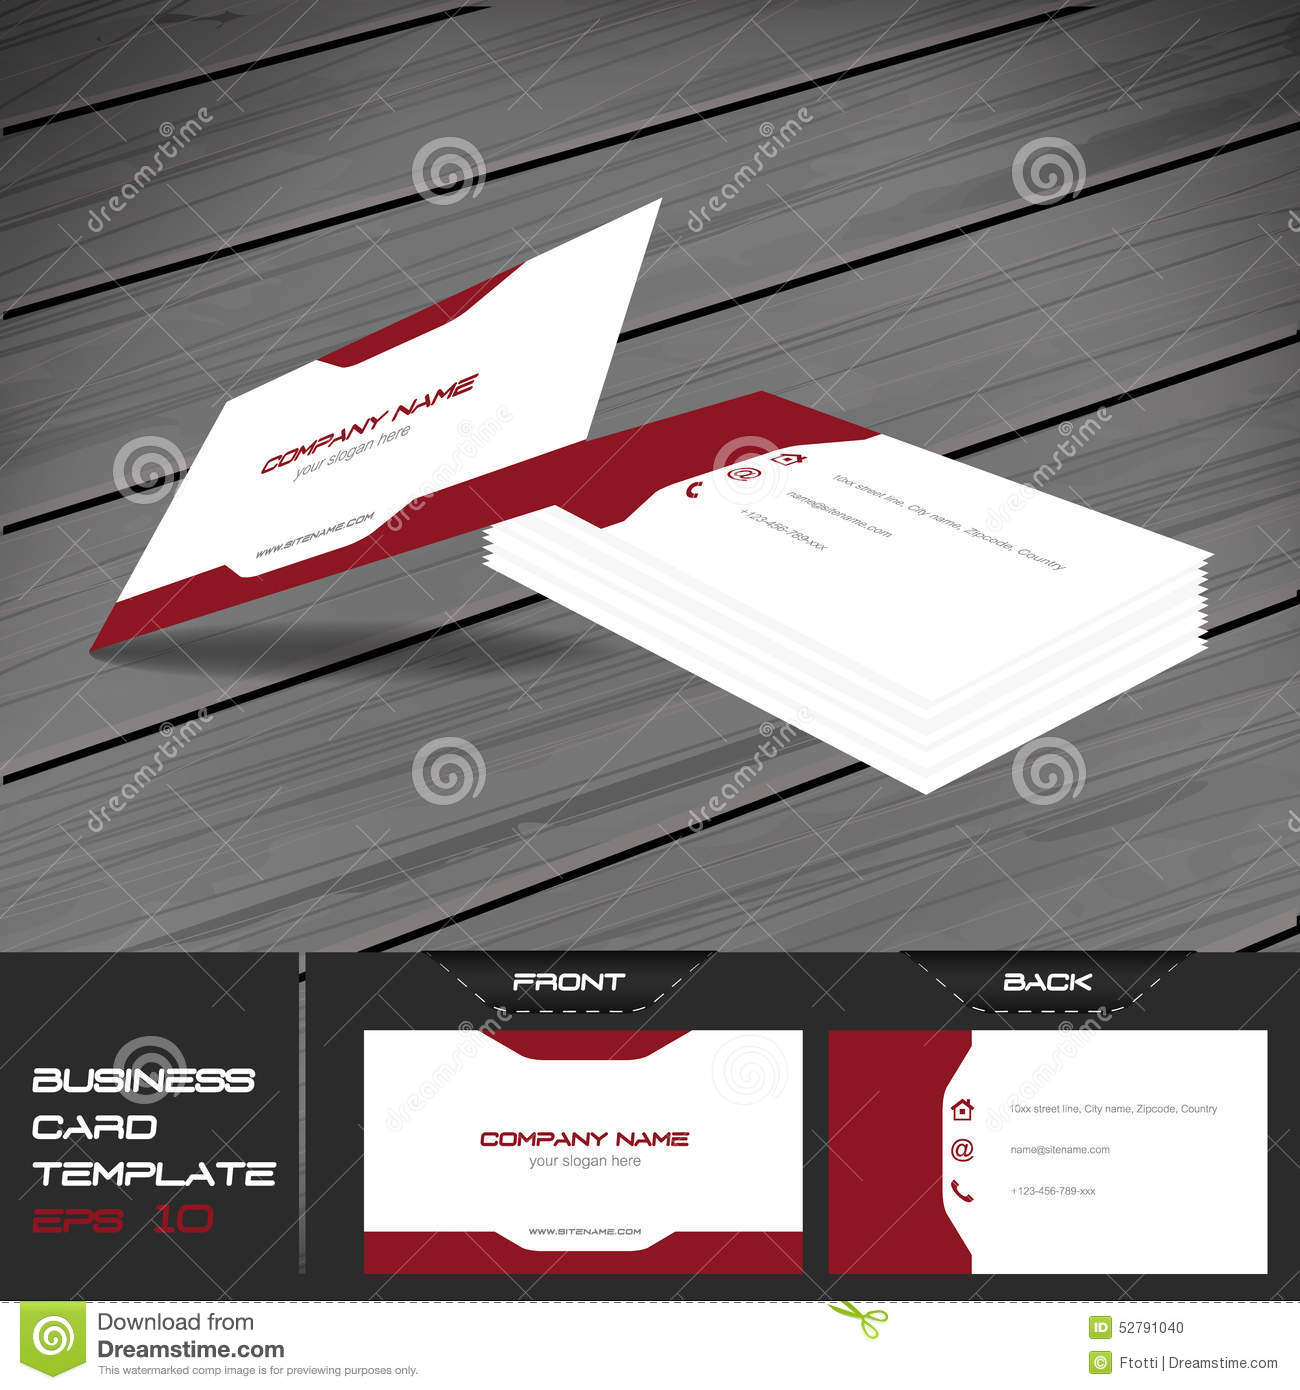 Front And Back Business Card Template Word Images - Business Cards Ideas